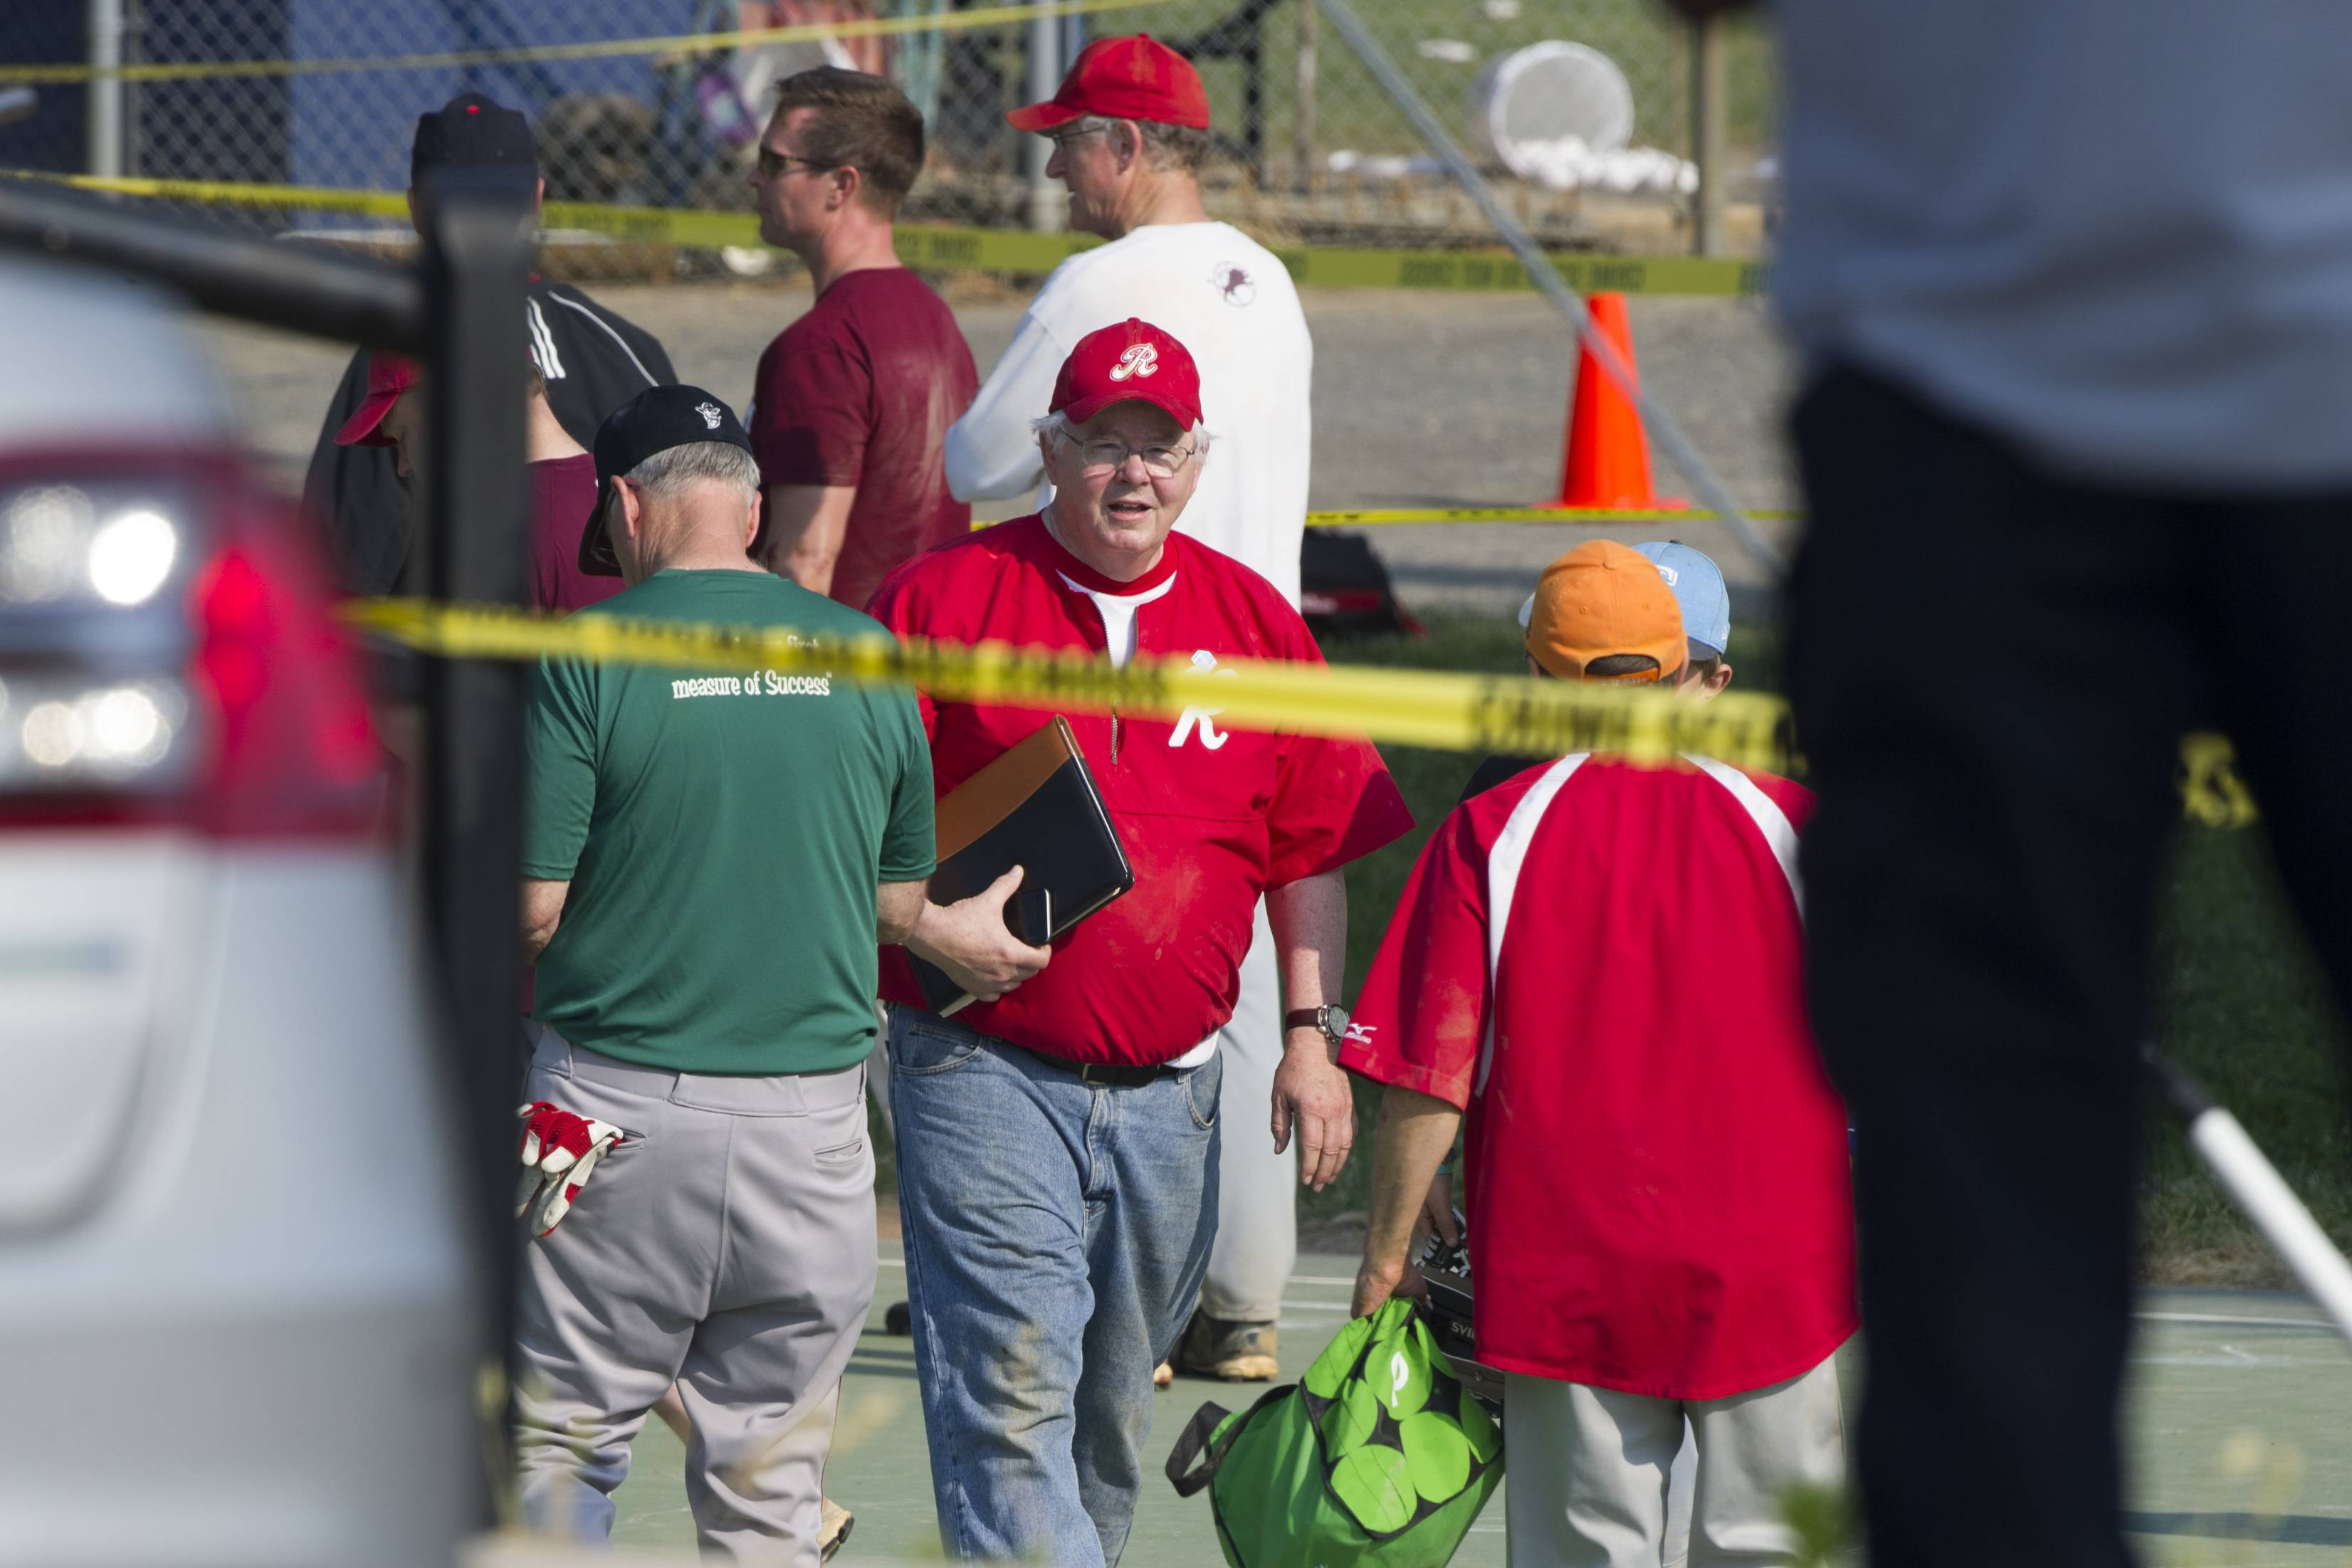 Rep. Joe Barton, R-Texas, center, and other members of the Republican Congressional softball team stand behind police tape of the scene of a multiple shooting in Alexandria, Va., Wednesday.